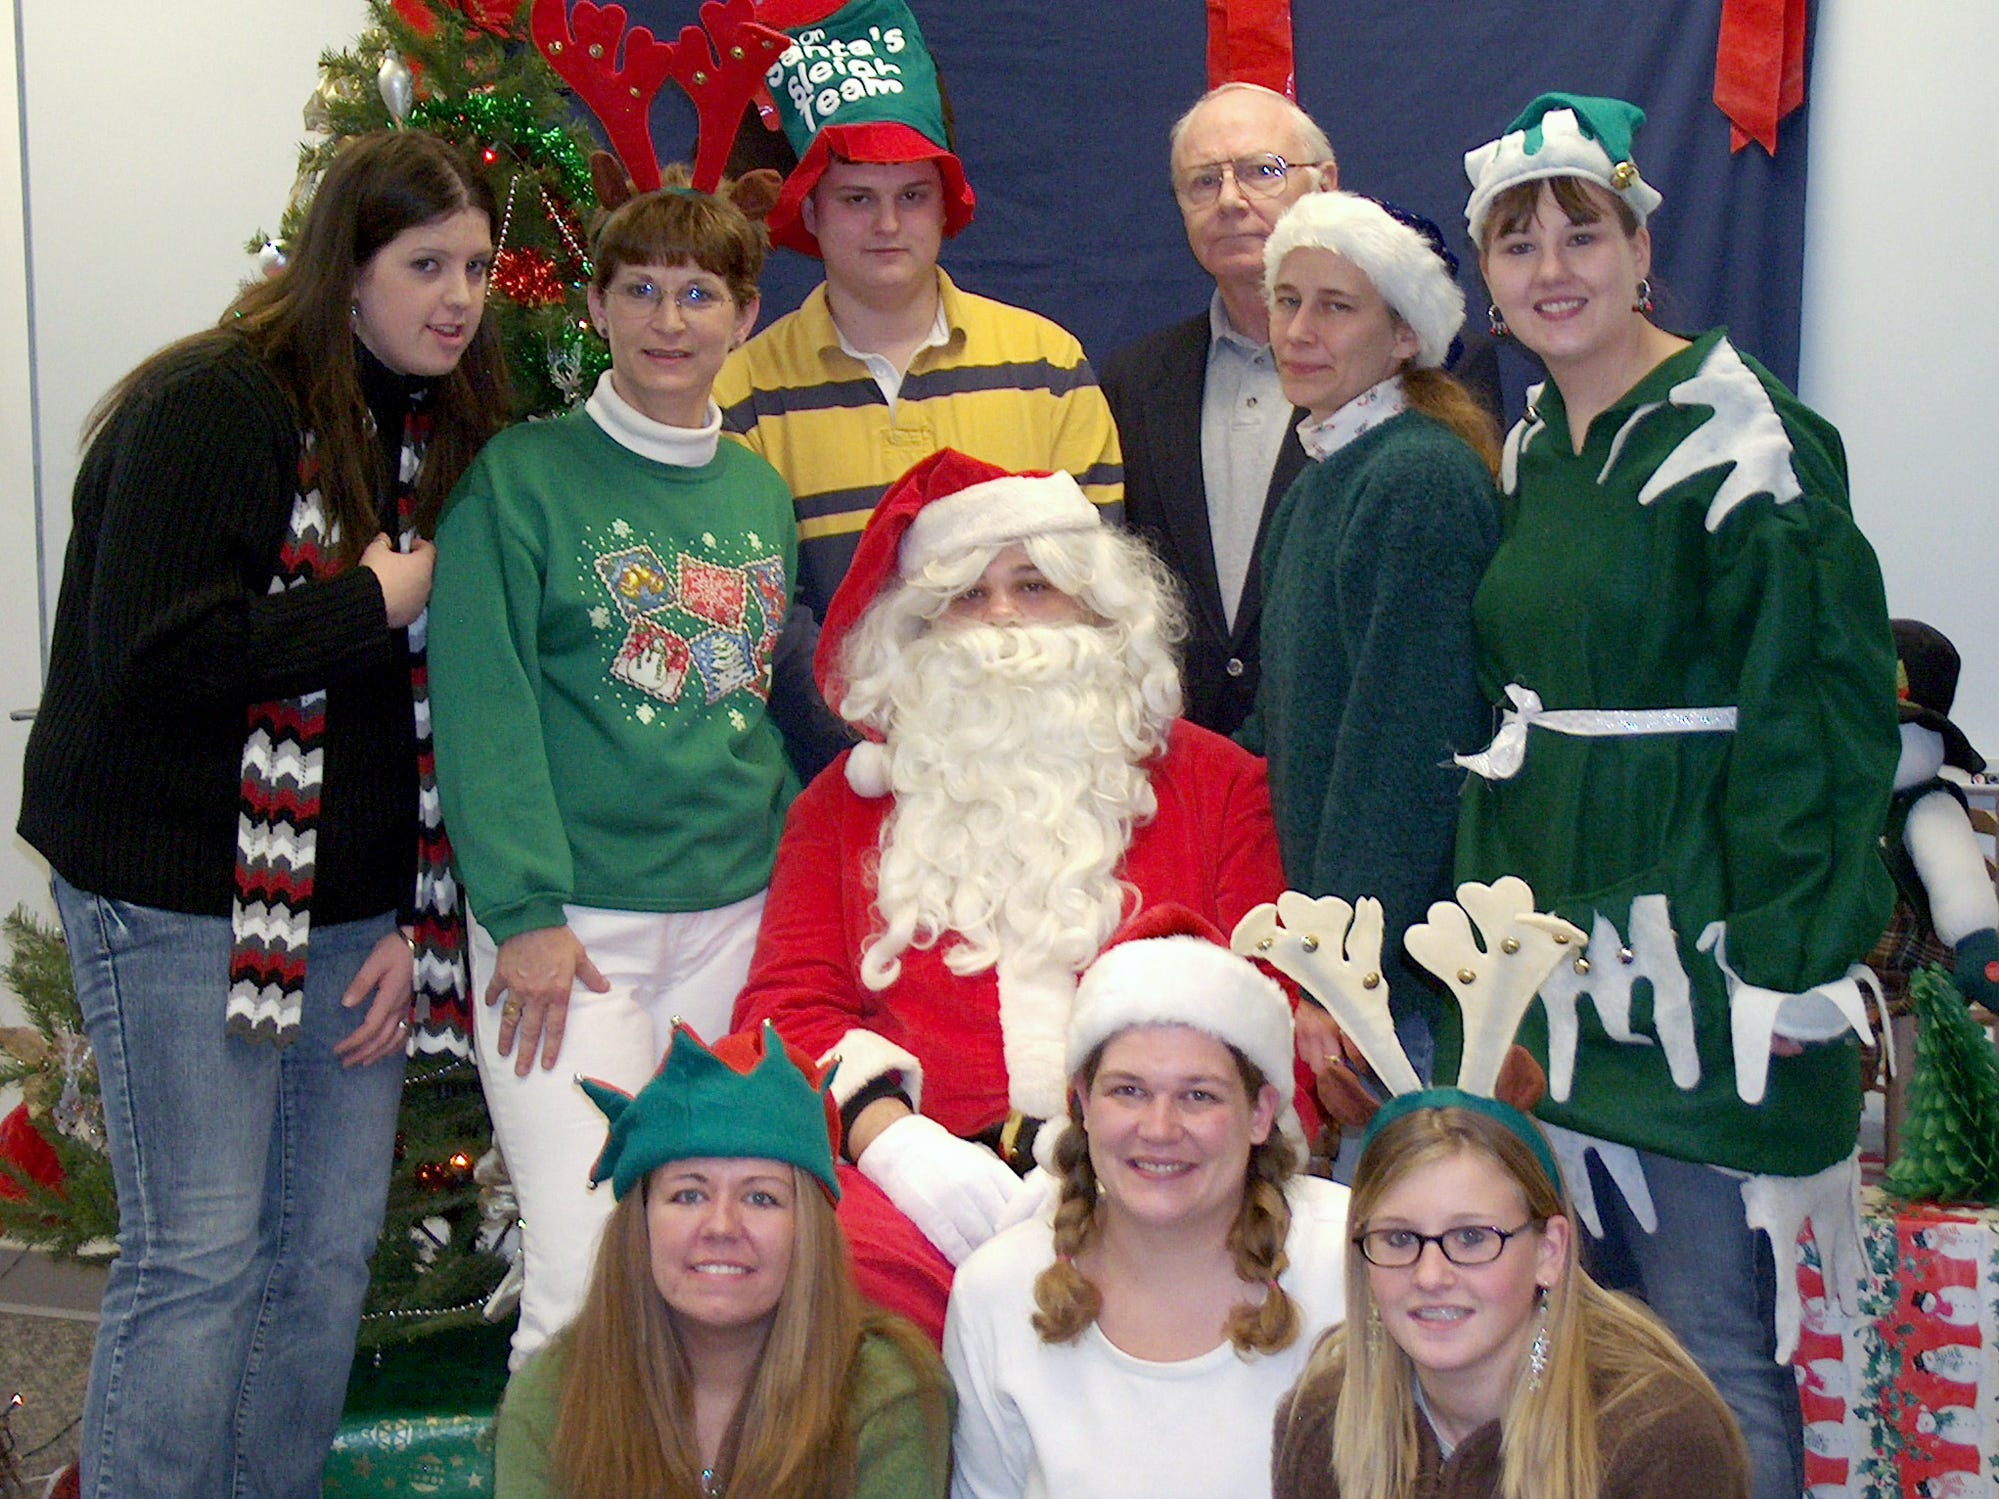 In 2006, Members of the Lackawanna College Student Council in Towanda helped a local charity recently with a pictures with Santa party. The goal was to collect canned and dry food to donate to TACO food pantry.  The students collected three large boxes of food and had about 50 children receive pictures with Santa.  Having their own picture taken were student council members, front from left, Cortney Allen, Ladean Vanderpool and Nicki Sayman, and back from left, Julie Slynn, Linda Fisher, Eric Shannon, Nate Reeves as Santa, adviser Jack Fox, Karen Keener and Tanya Sayman as an elf.